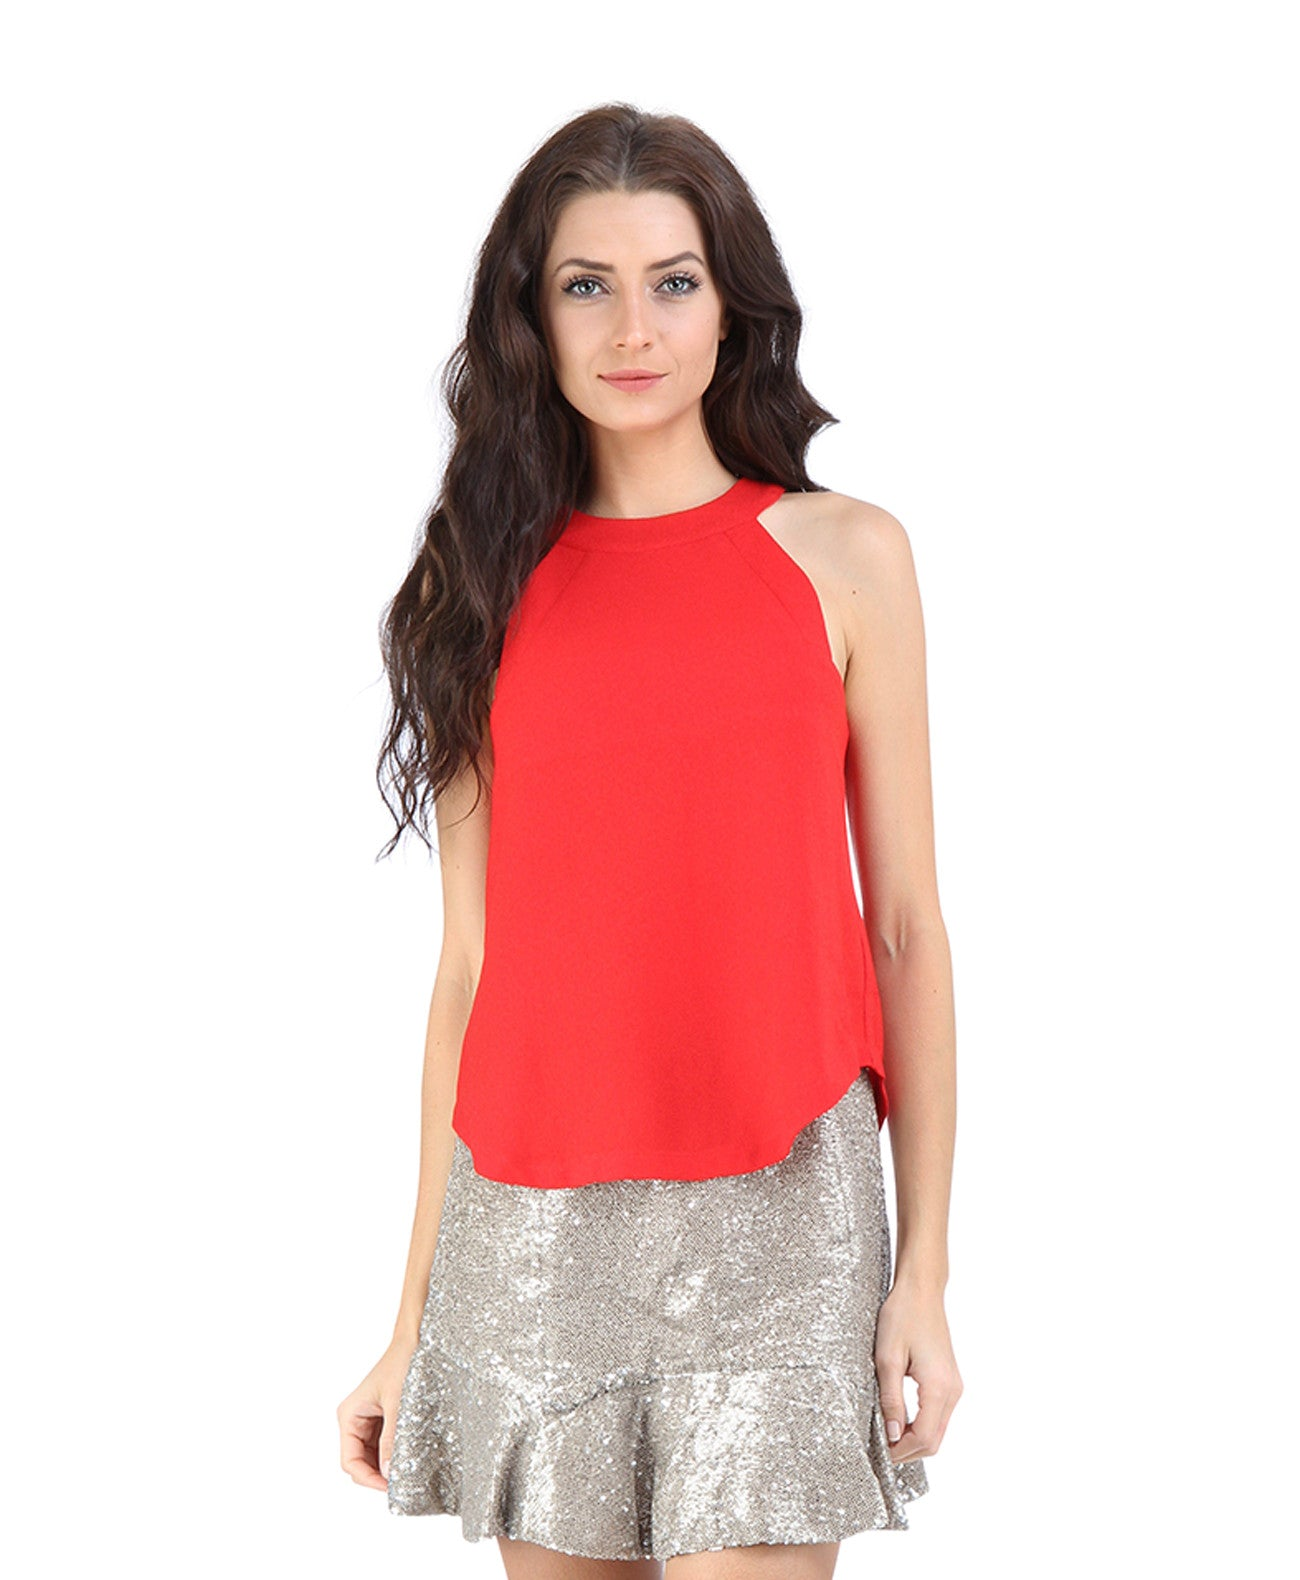 High Neck Sleeveless Woven Top - Koko & Palenki - 1